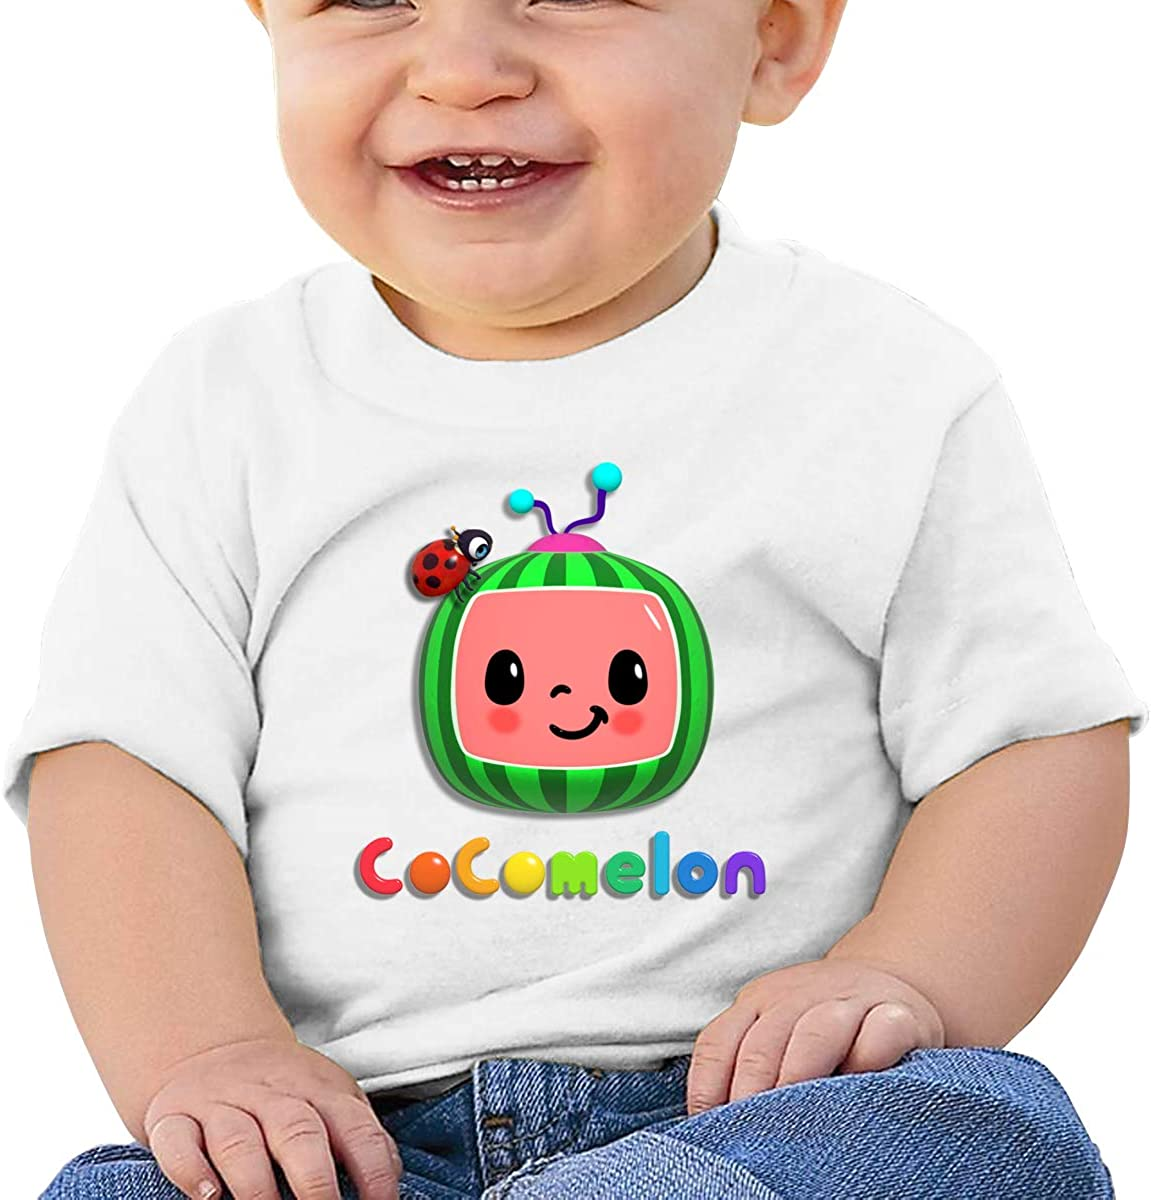 AP.Room Infant Cotton Cocomelon Jersey Short Sleeves Tee Personality Baby Boys T-Shirts White